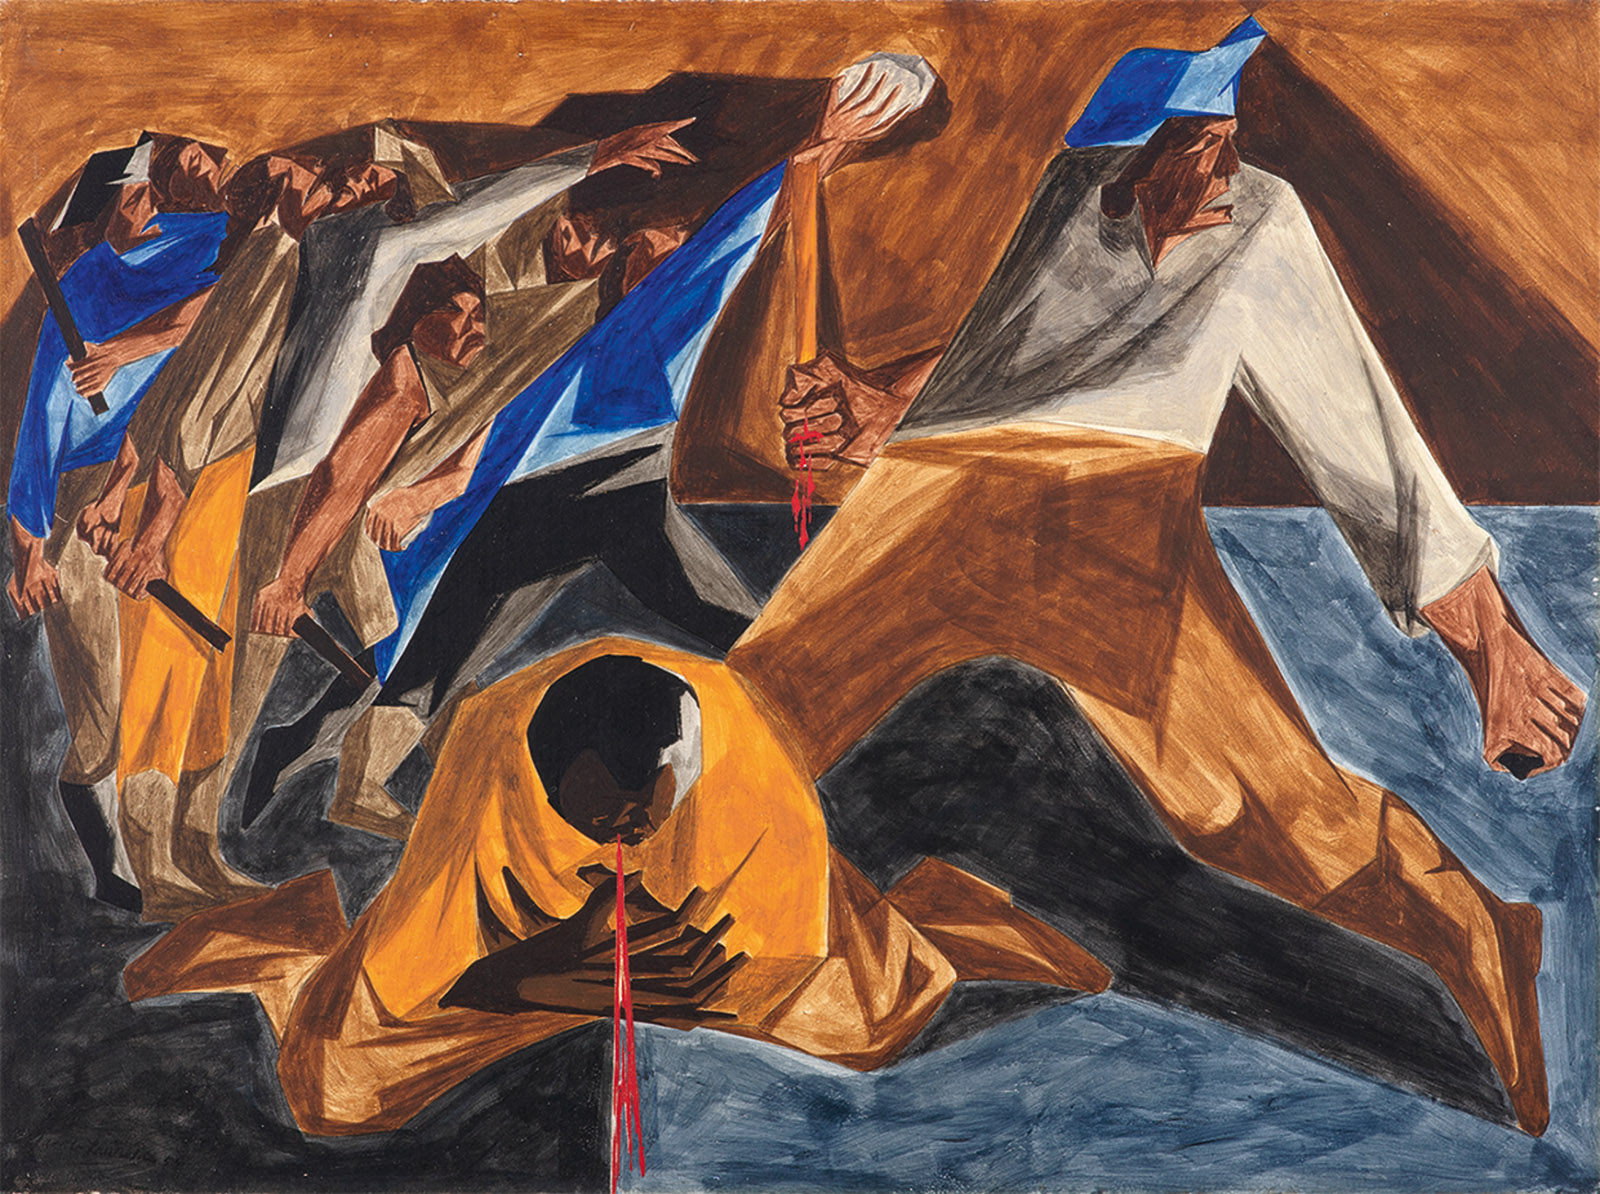 Massacre in Boston; panel 2 from Struggle: From the History of the American People; painting by Jacob Lawrence